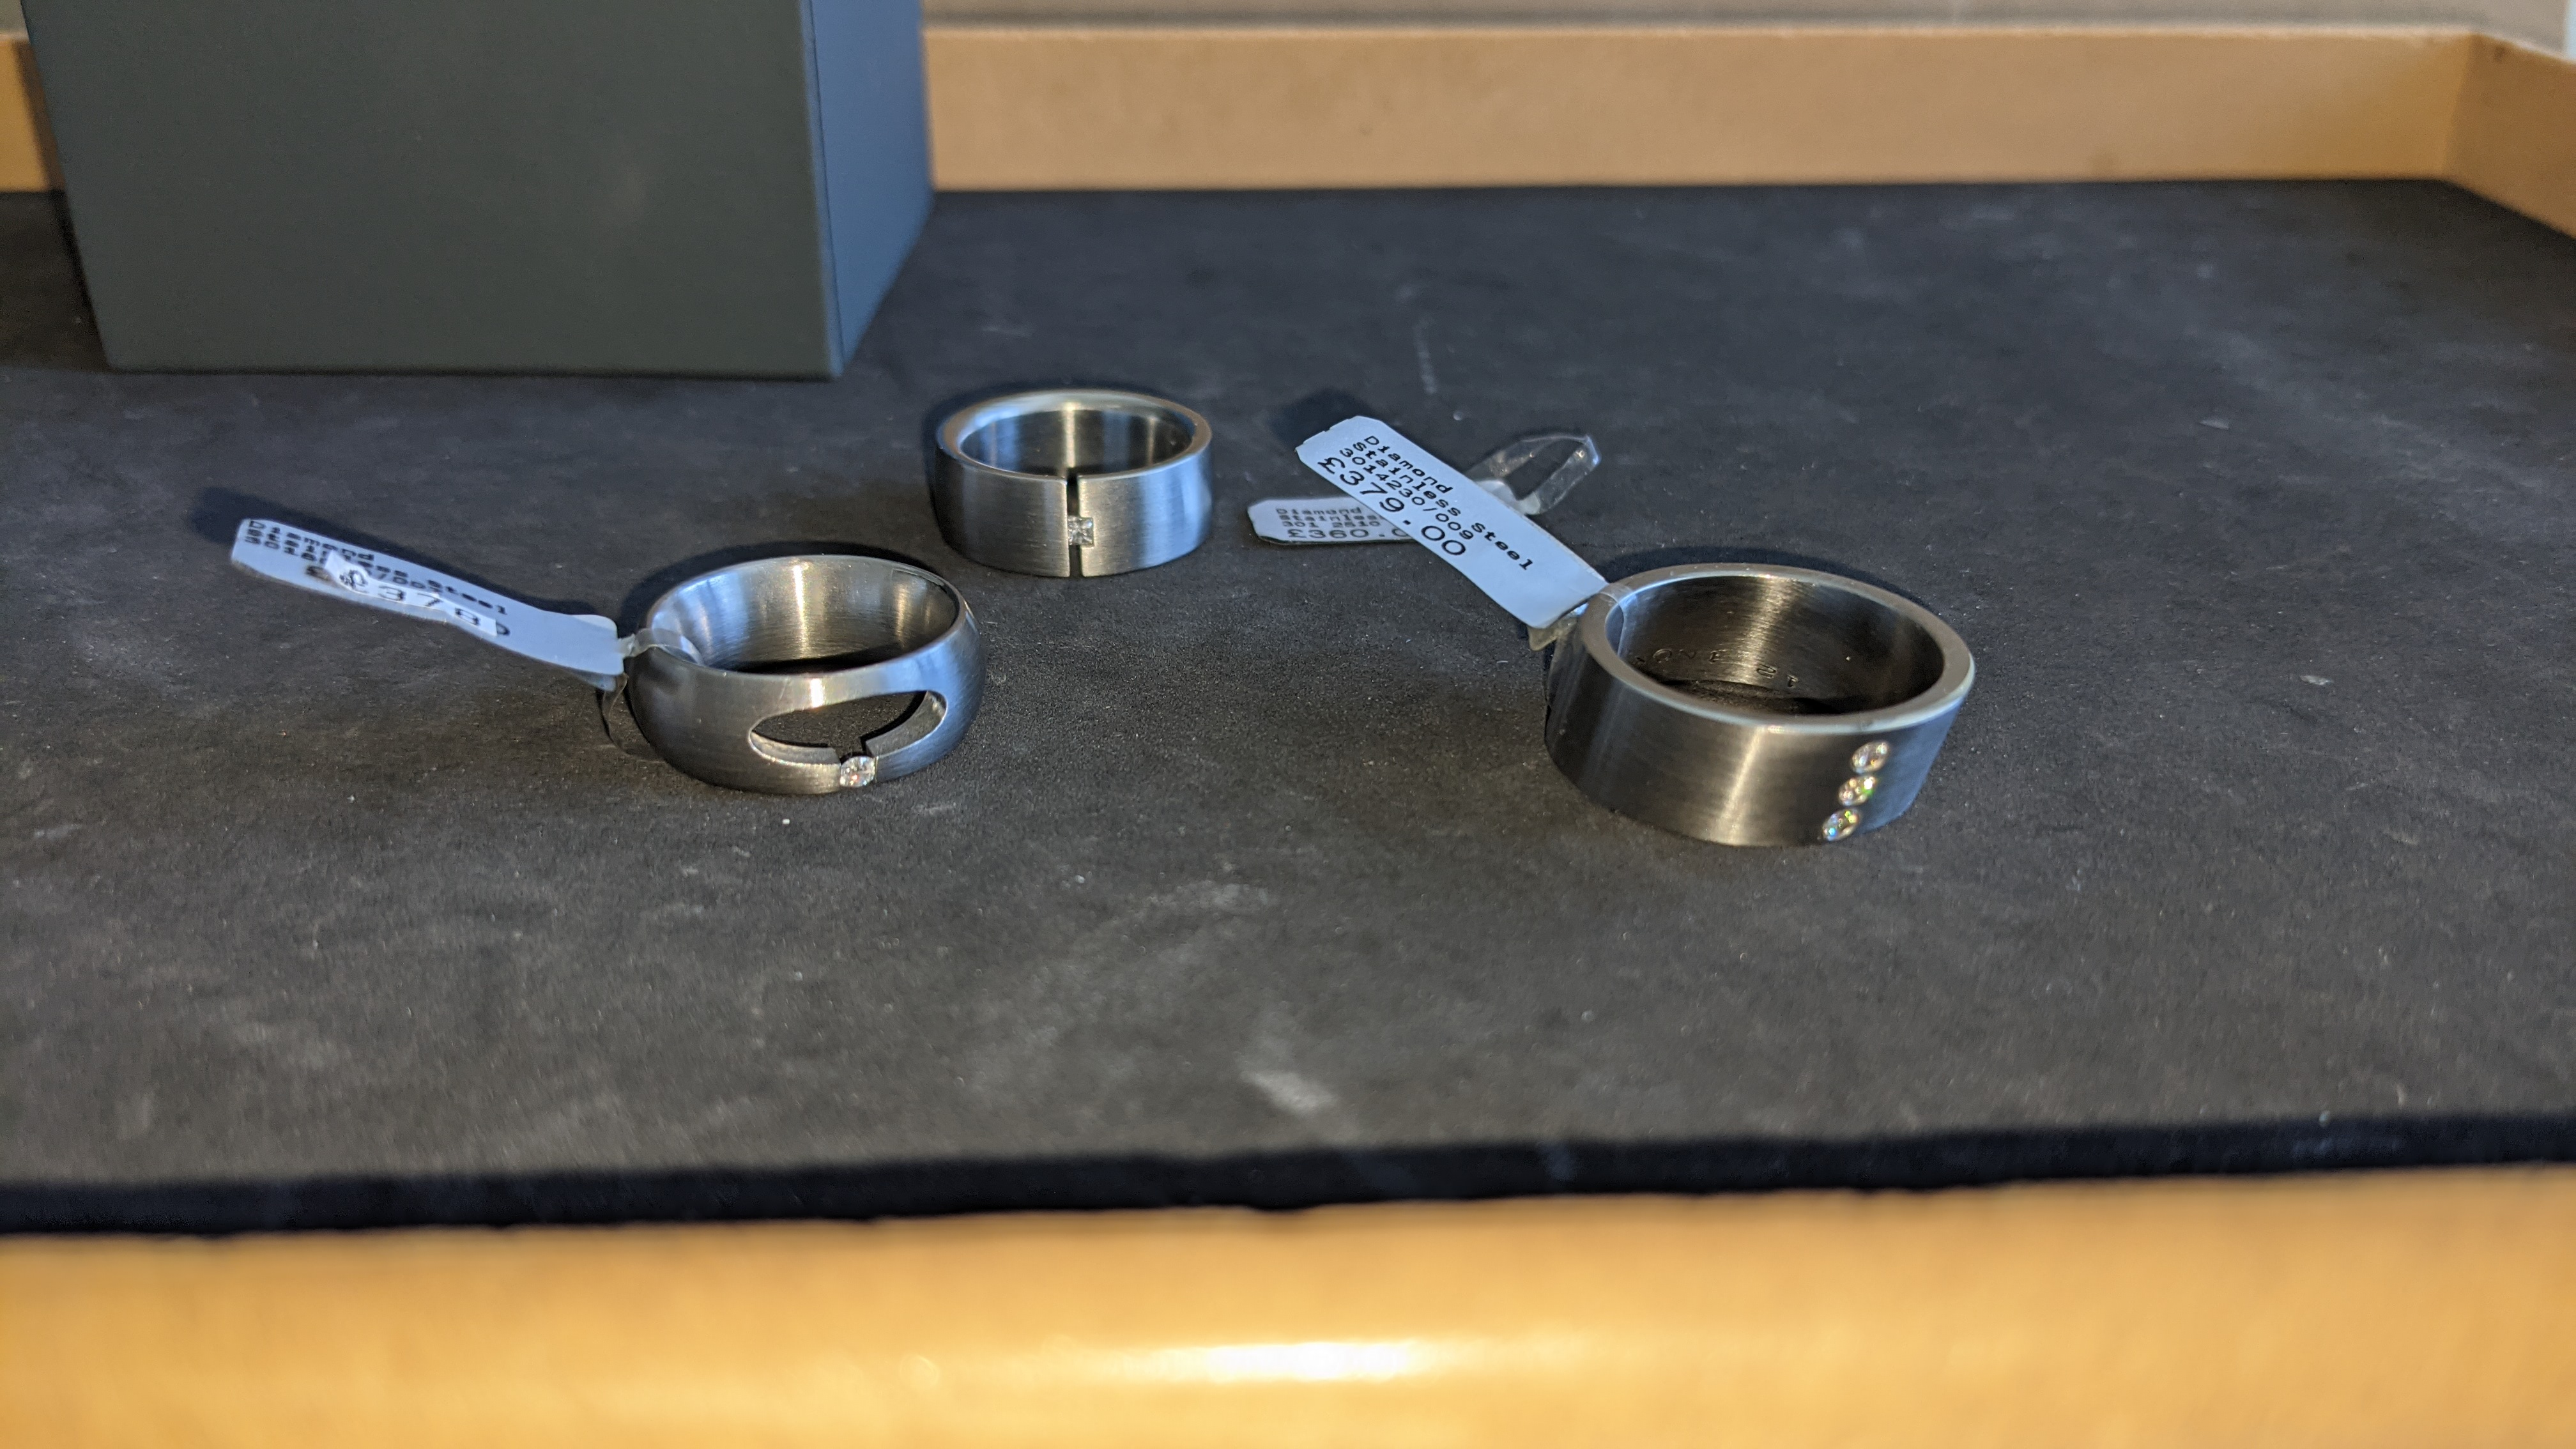 3 off assorted stainless steel & diamond rings with RRPs of £360, £378 & £379. Total RRP £1,117 - Image 11 of 14